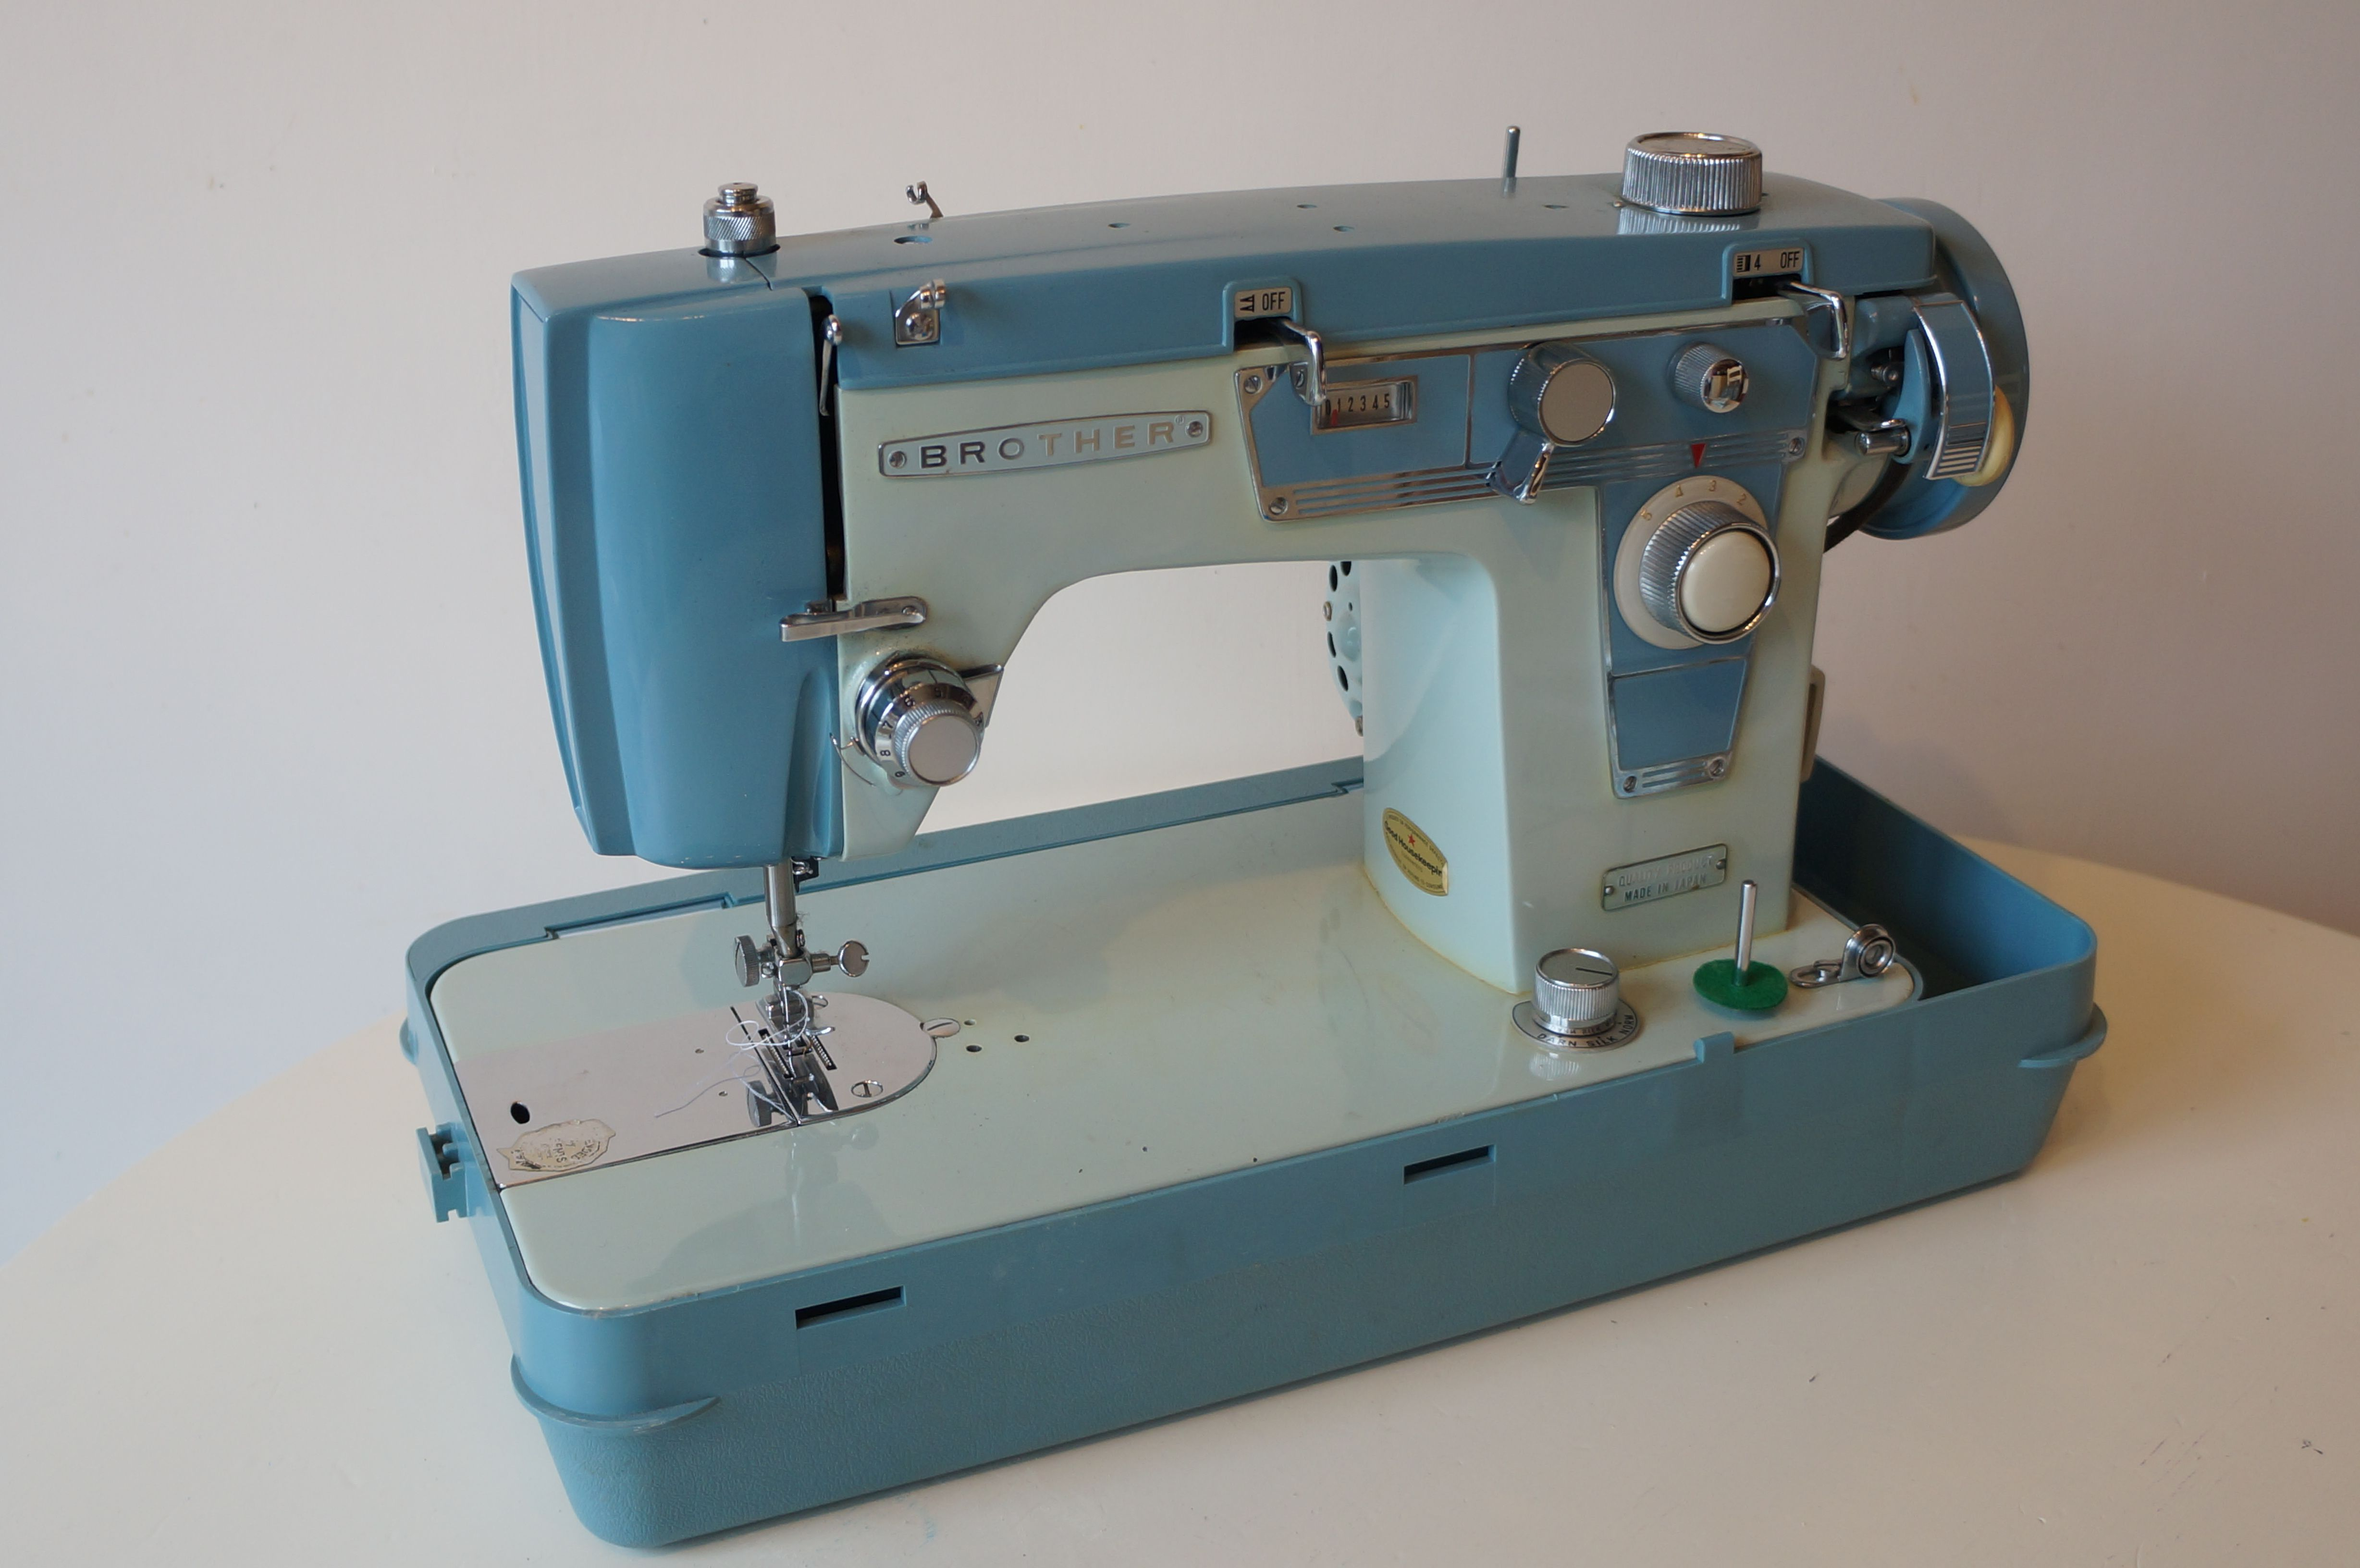 Vintage 1960s Brother Sewing Machine Lovely Blue With Chrome Features A Truly Beautiful Thing Sewing Machine Vintage Sewing Machine Brother Sewing Machines